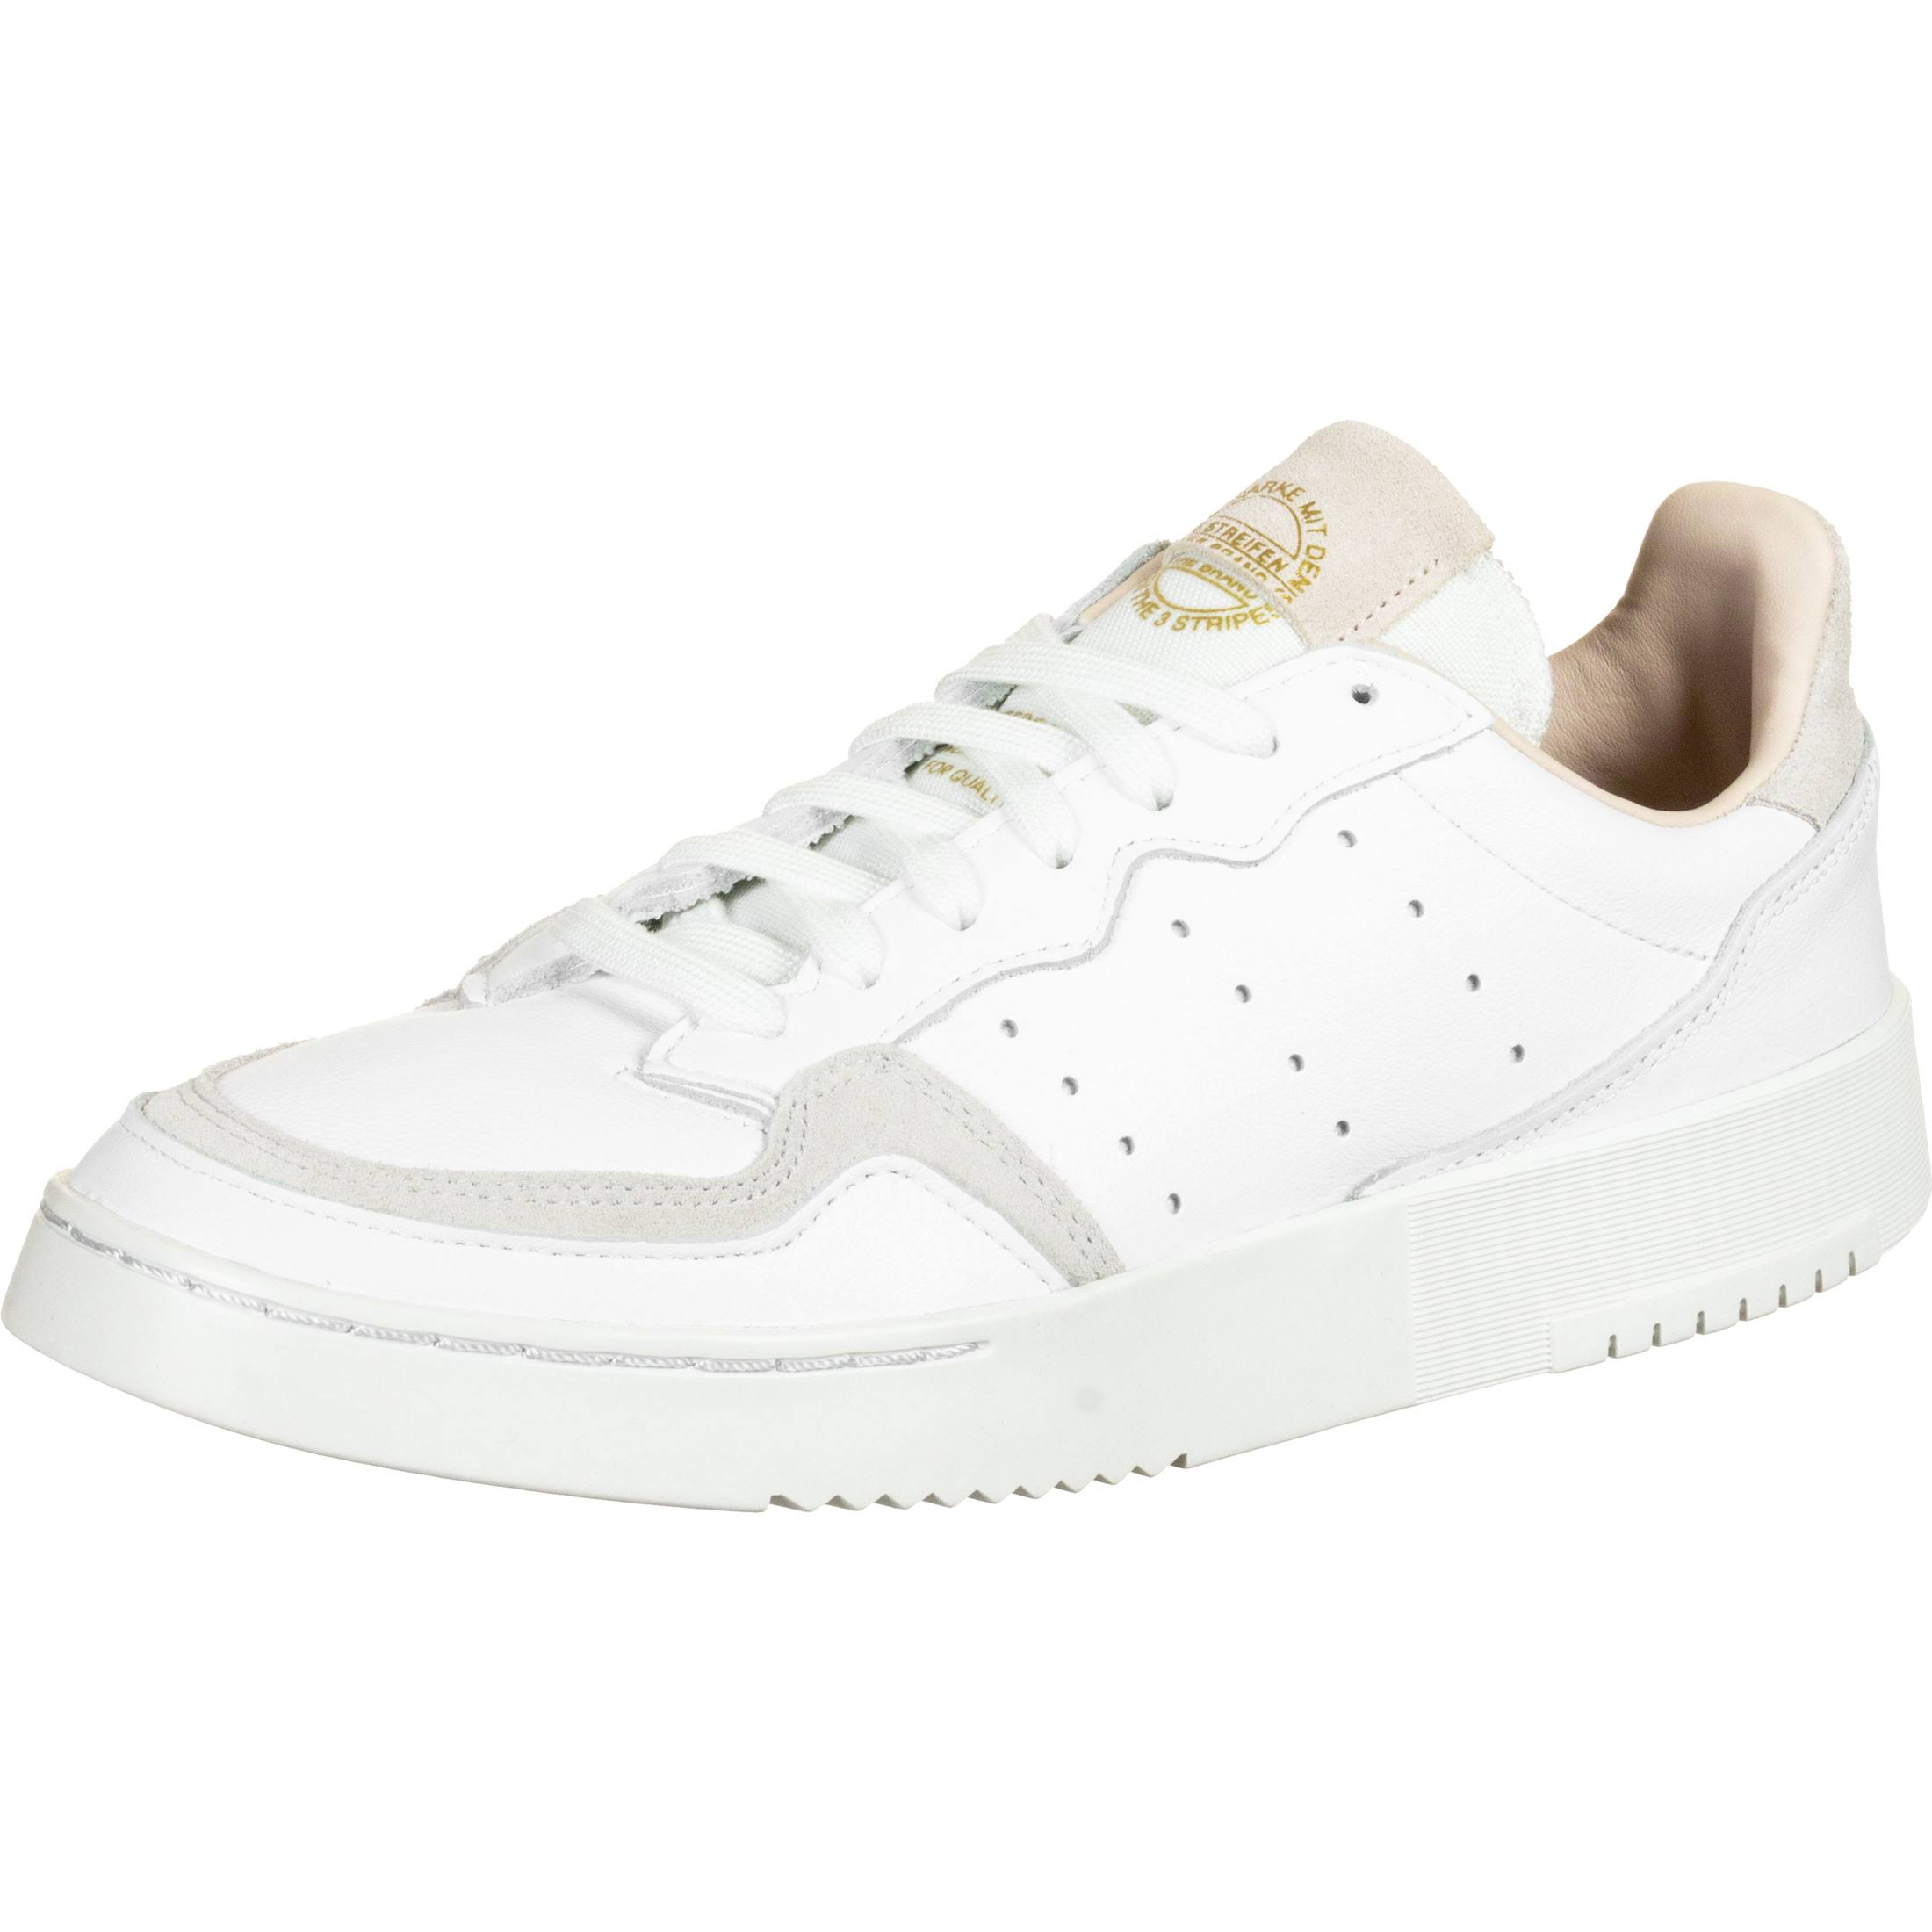 Adidas Supercourt White Crystal White